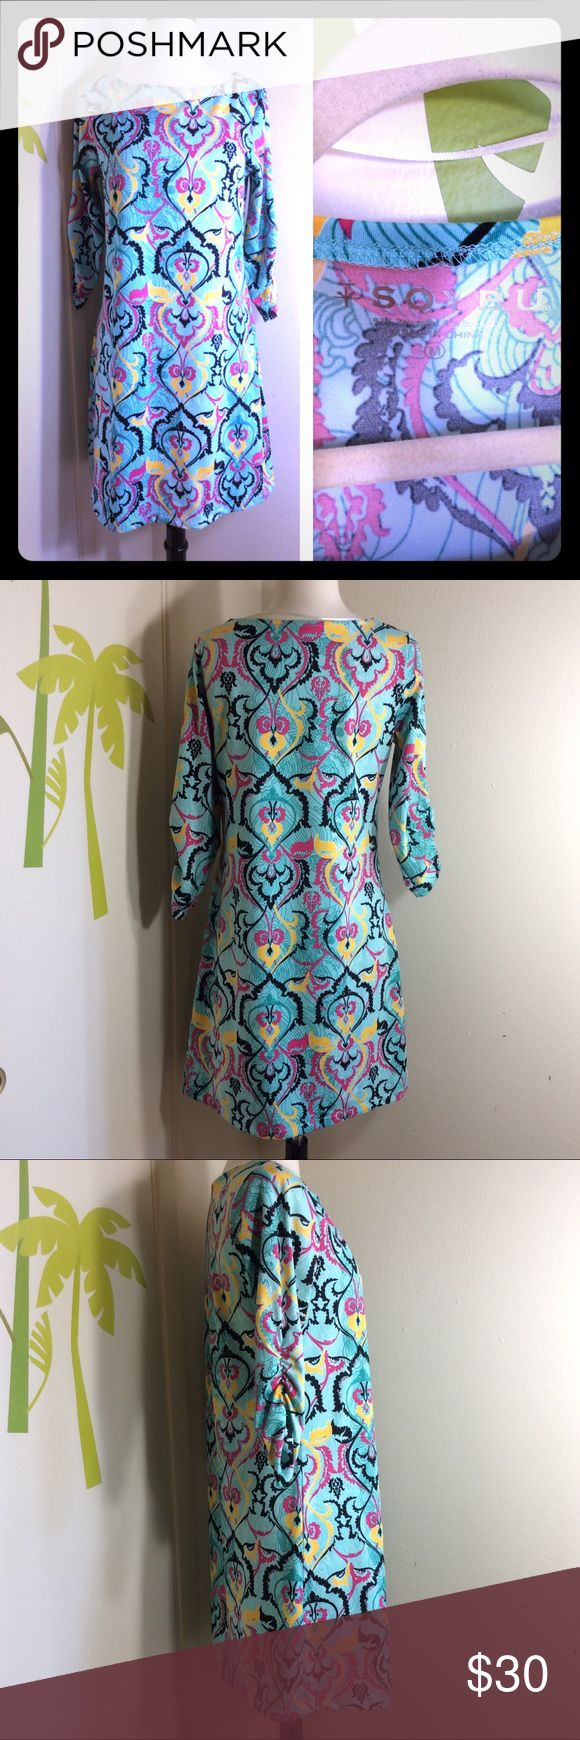 "Soybu Green Multi Color Dress Size Medium In great condition. 92% Polyester & 8% Spandex. Soft and stretchable. Armpit to armpit: 17"", Sleeve: 12"", Length: 34"" Soybu Dresses"